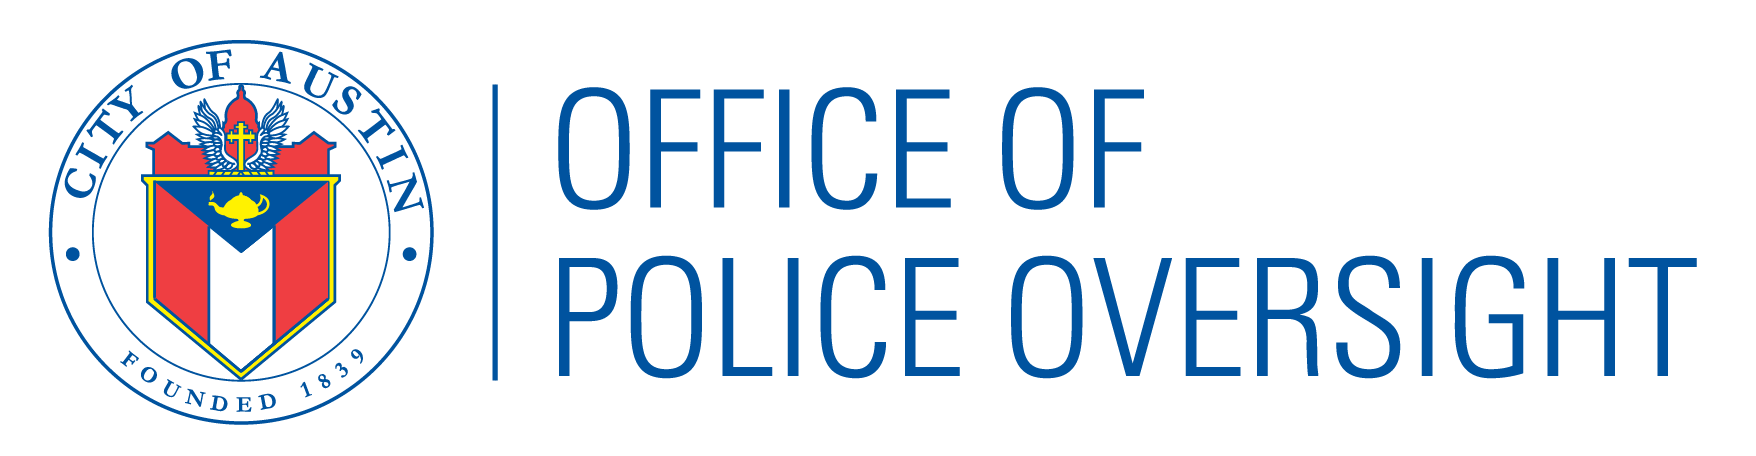 Office of Police Oversight